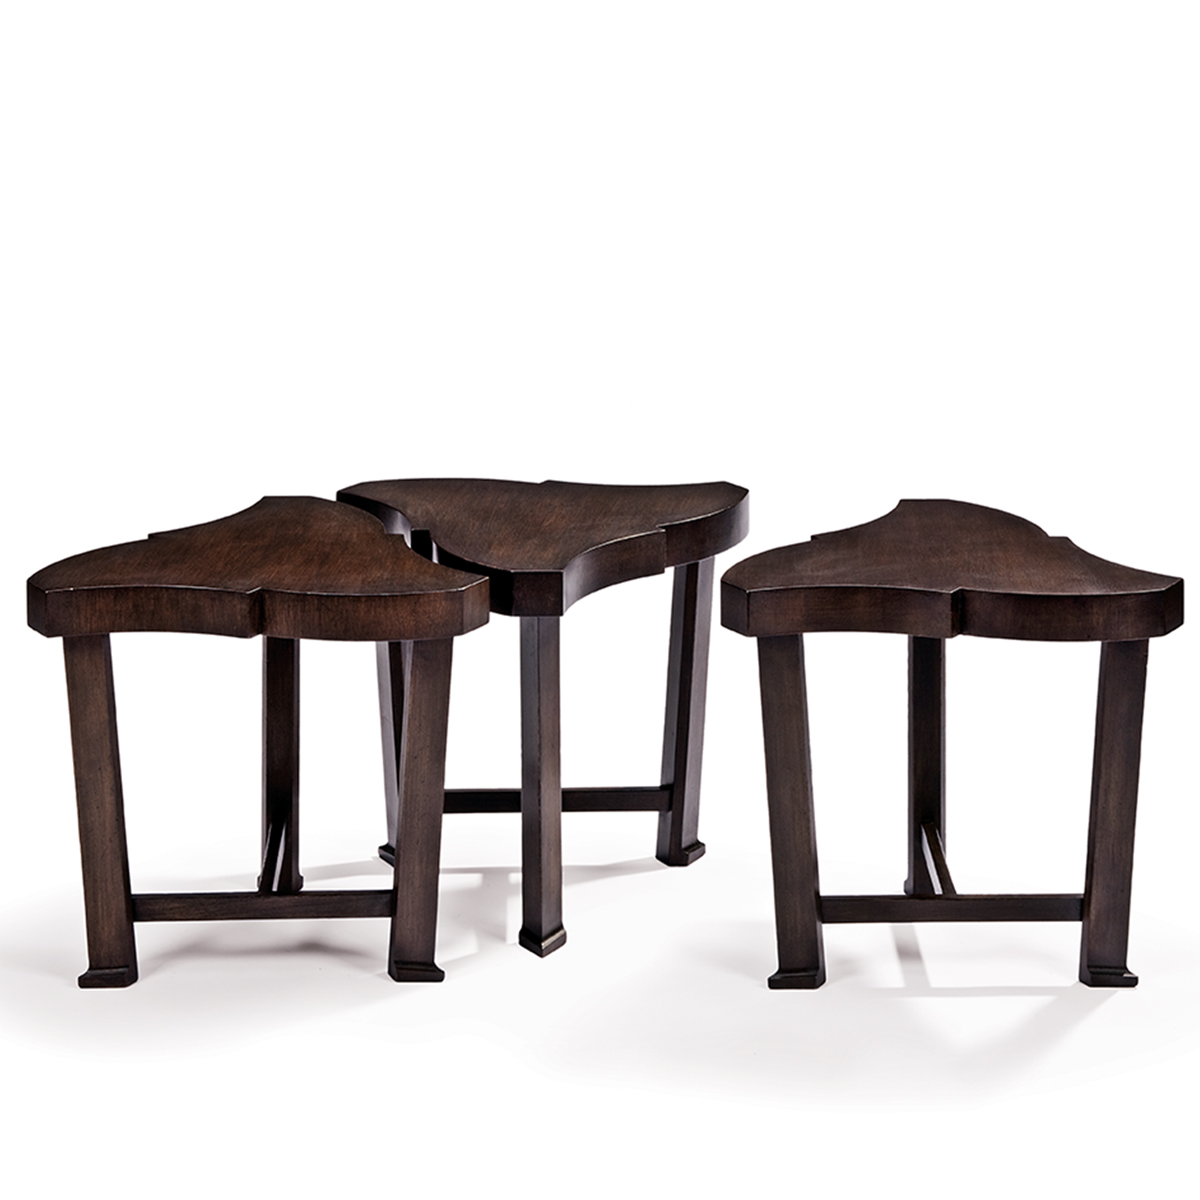 Torque-Leaf-Side-Tables_For-Web.jpg